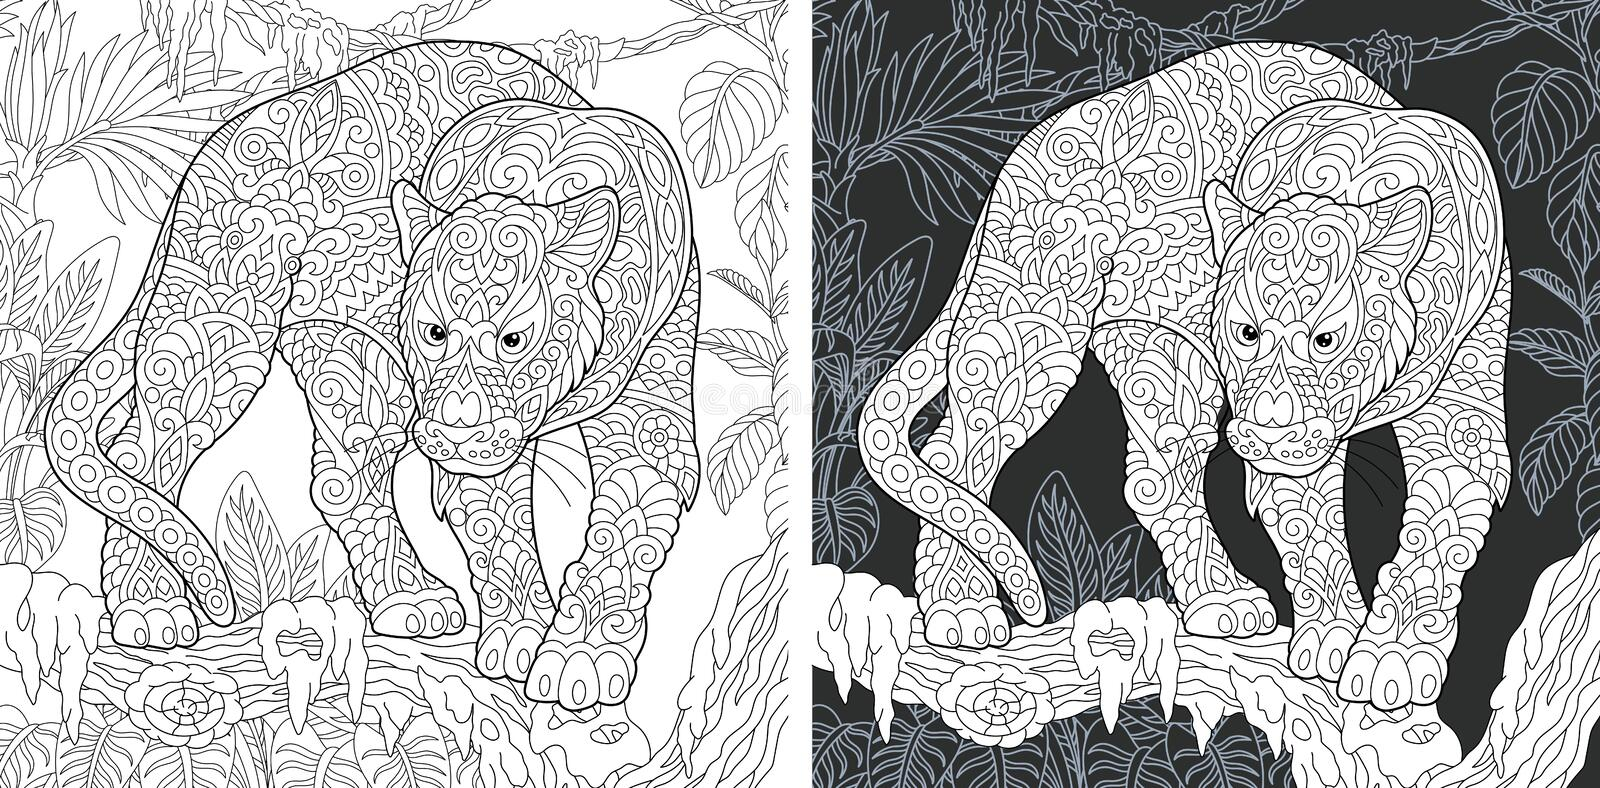 Animal Coloring Page. Animal. Coloring Page. Coloring Book. Colouring picture with panther drawn in zentangle style. Antistress freehand sketch drawing. Vector vector illustration